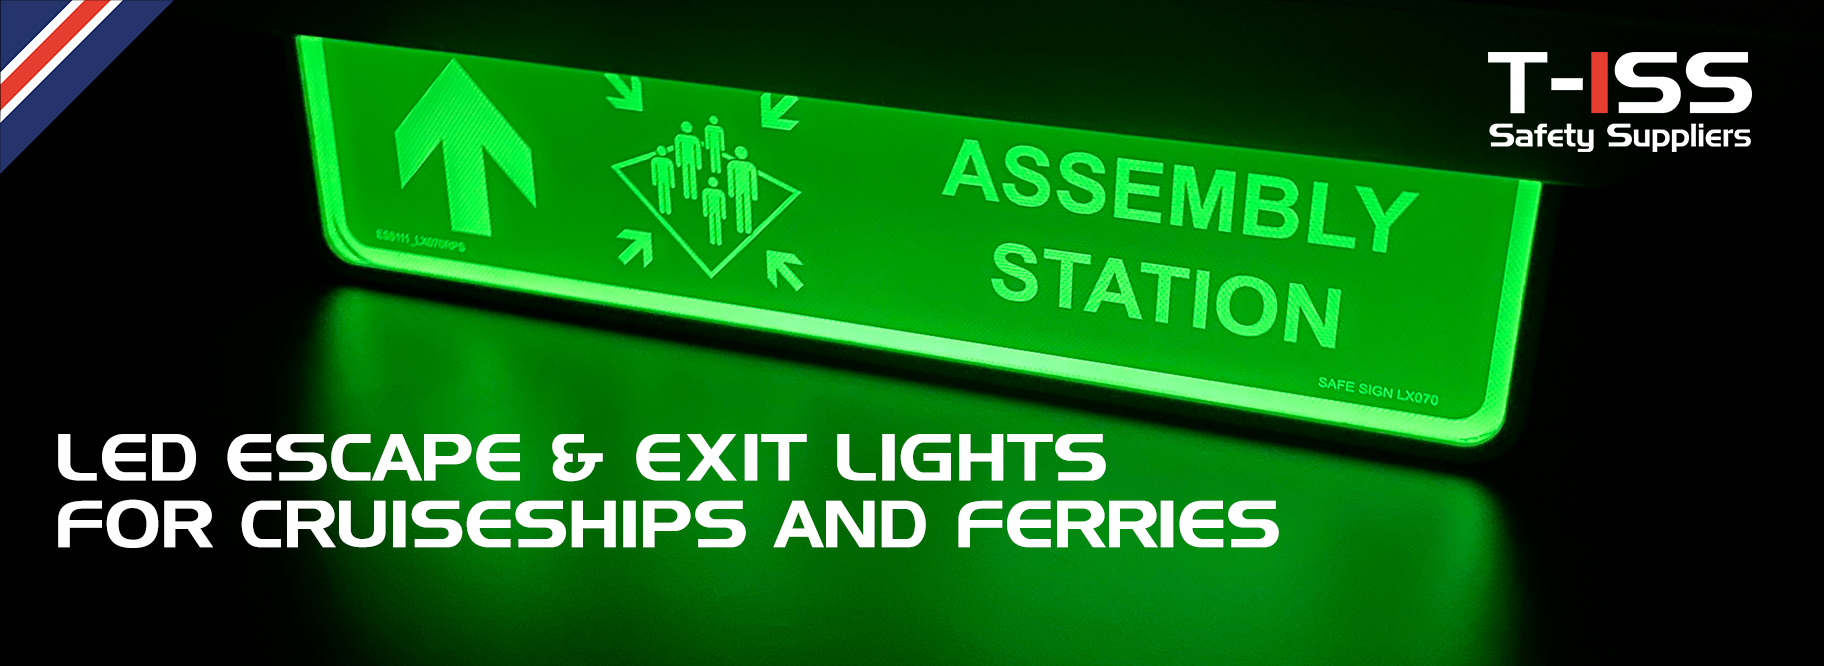 LED Escape signs & Exit lights by T-ISS Safety Suppliers